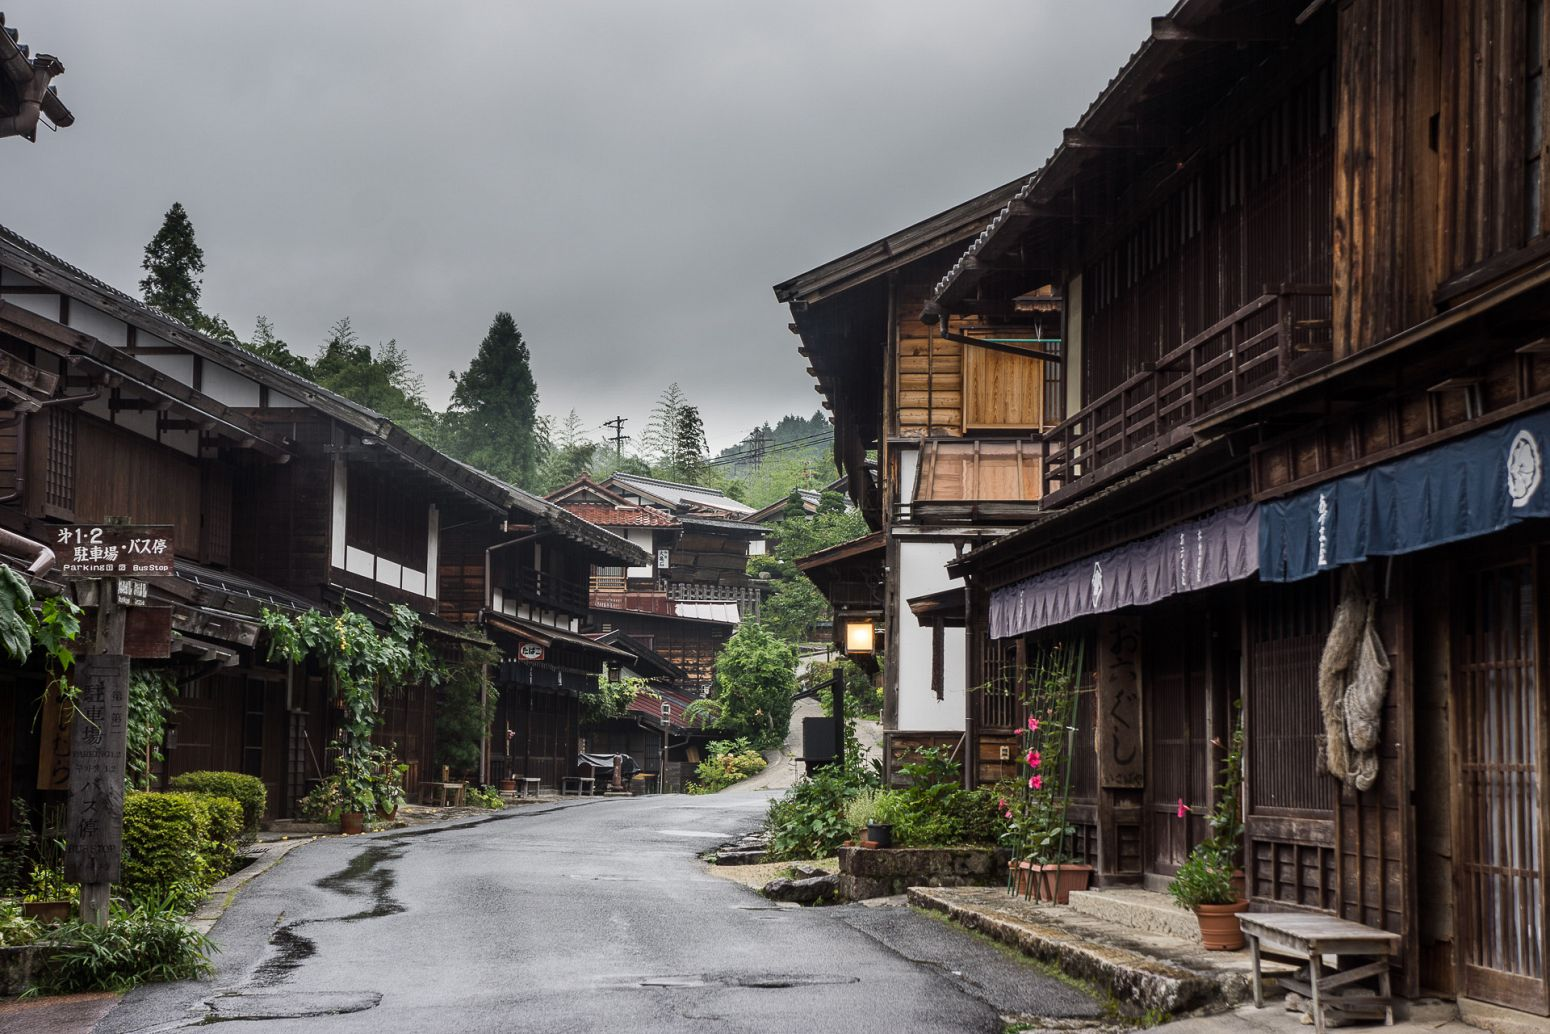 Old city of Tsumago, Japan